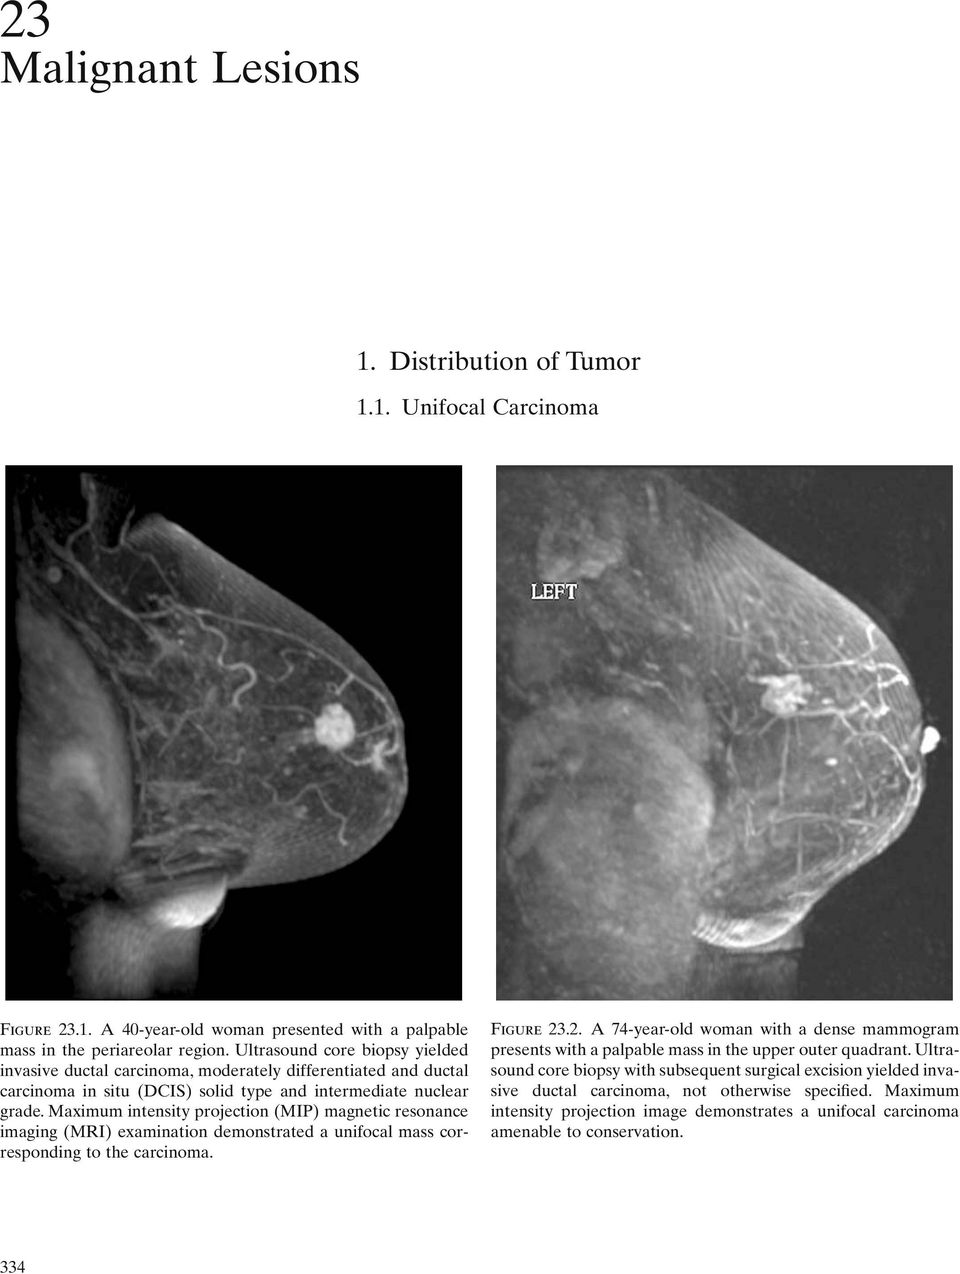 Maximum intensity projection (MIP) magnetic resonance imaging (MRI) examination demonstrated a unifocal mass corresponding to the carcinoma. Figure 23